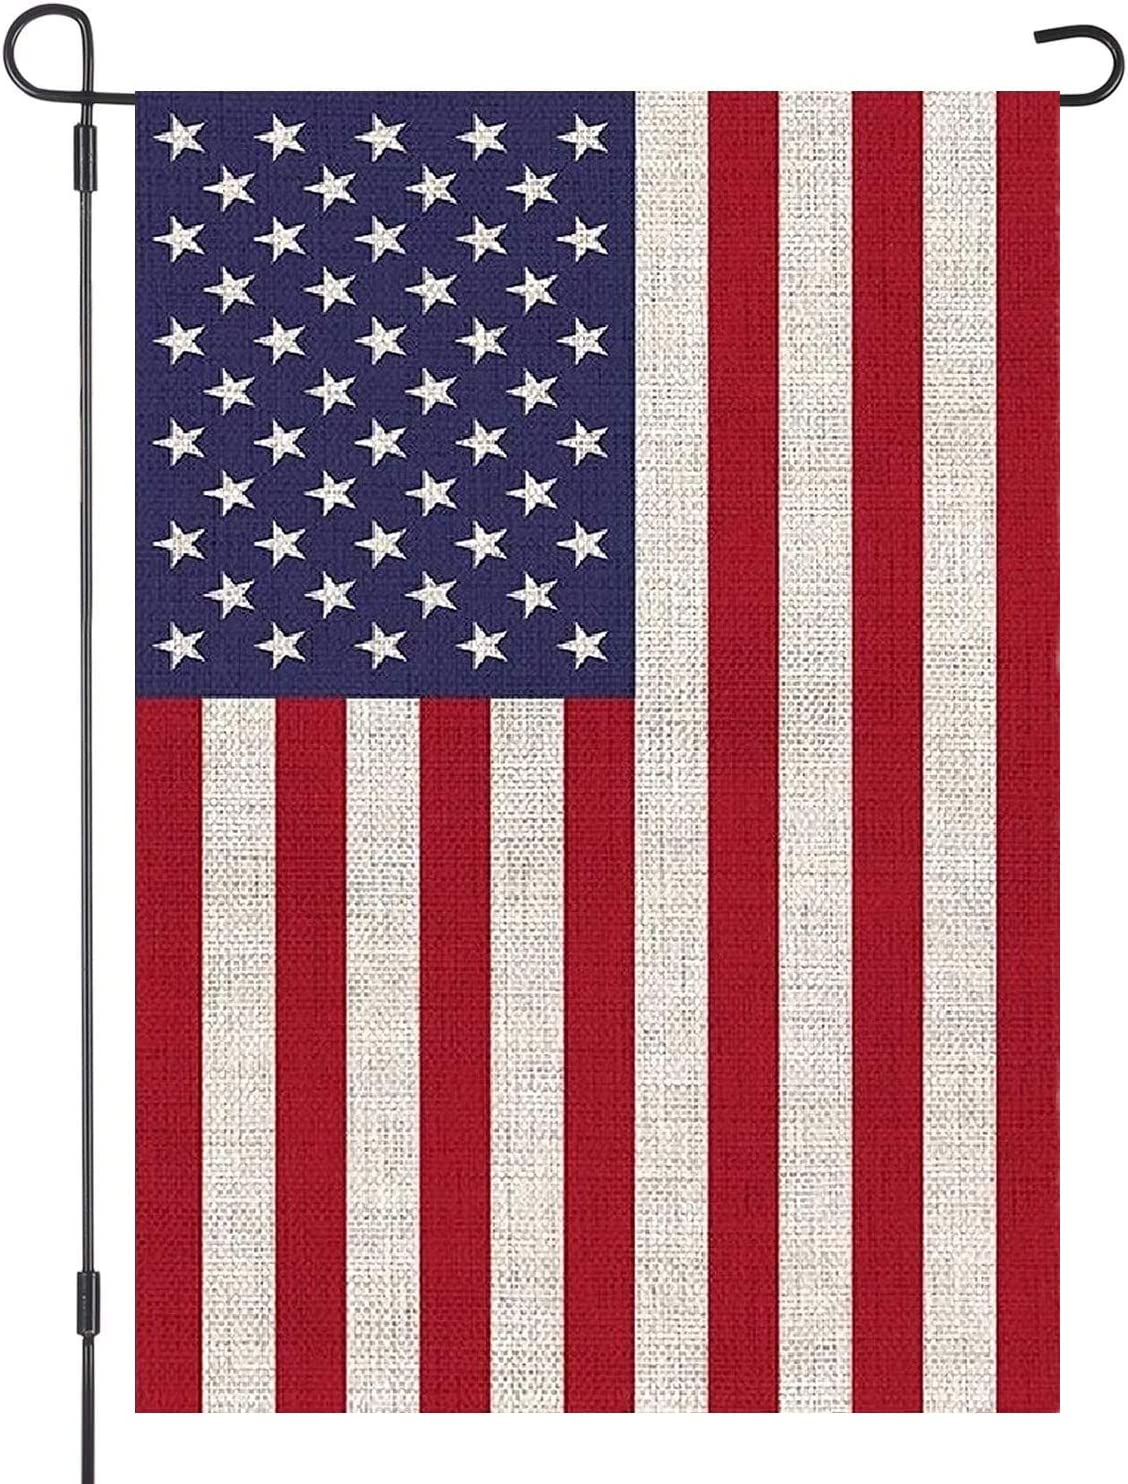 American Garden Flag USA Independent Day 4th of July Celebrate Burlap Double Sided Outdoor Yard Decorations 12.5 x 18 Inch